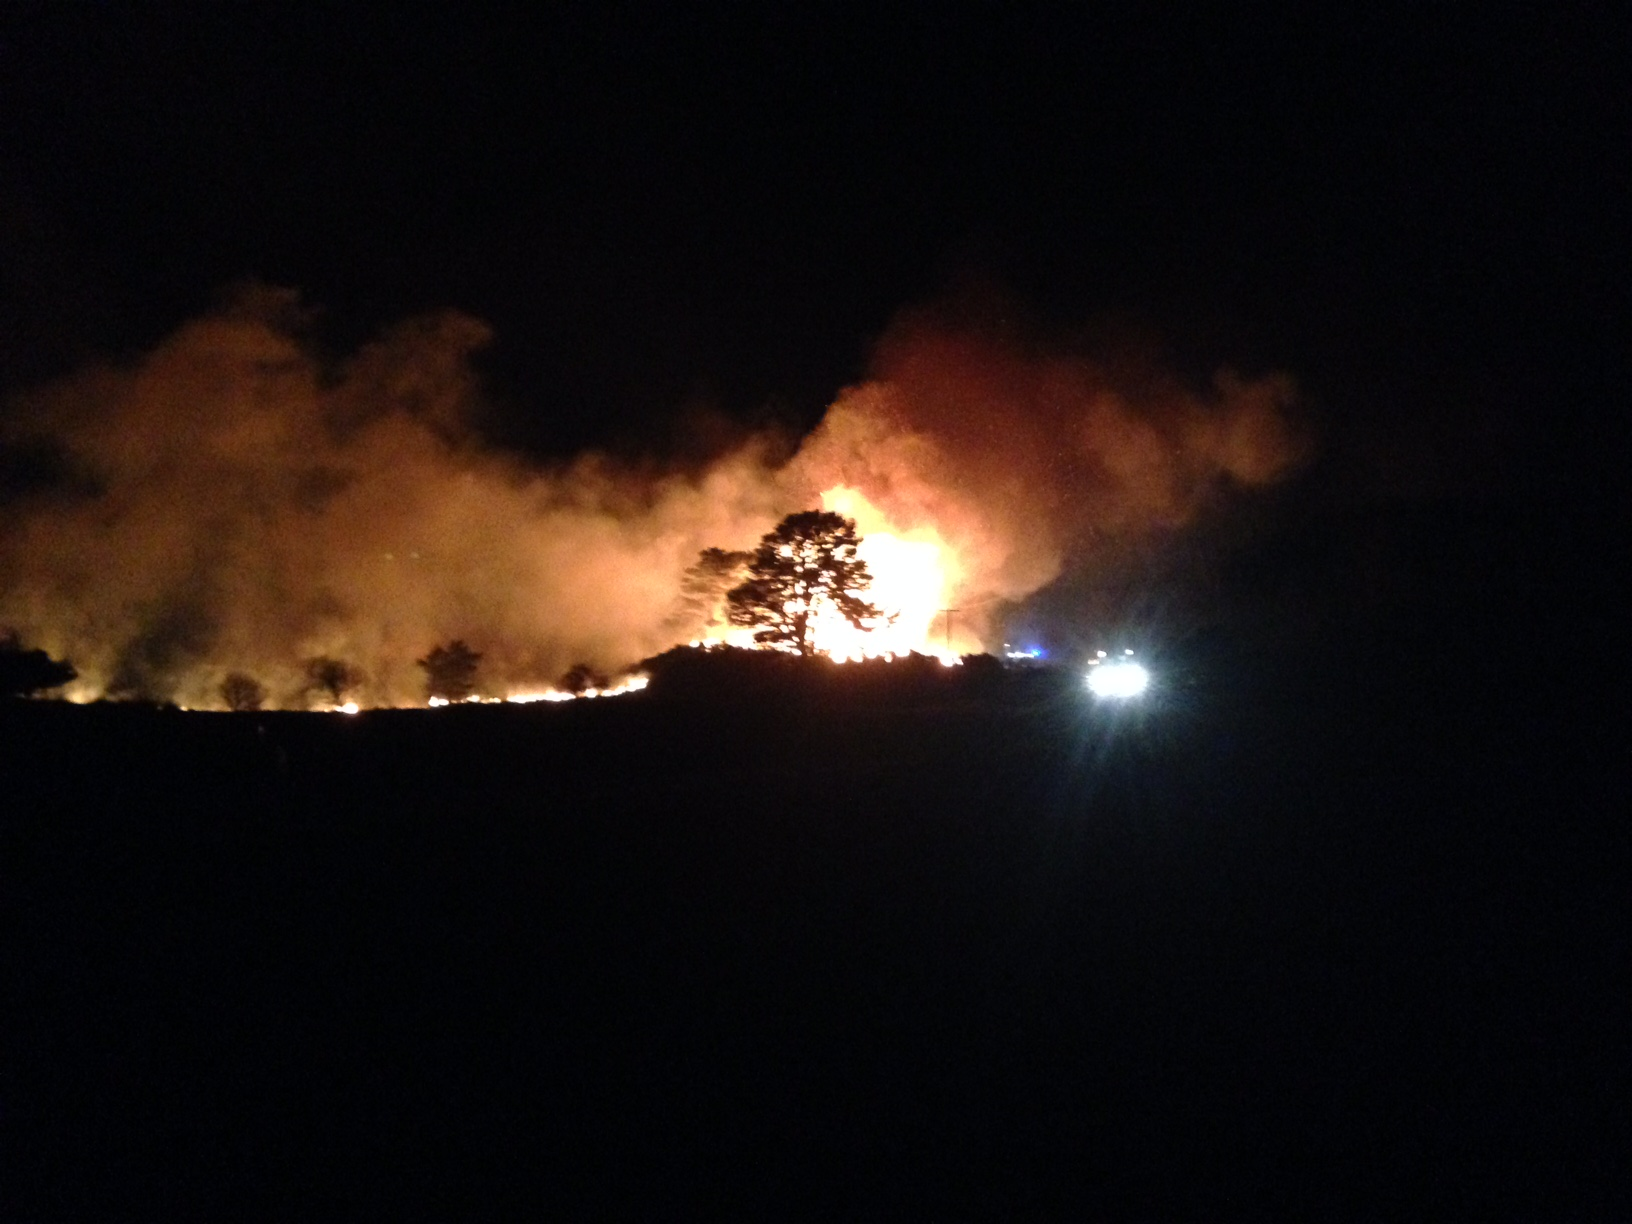 SFRS dealing with wildfire behind water treatment works, Dornoch